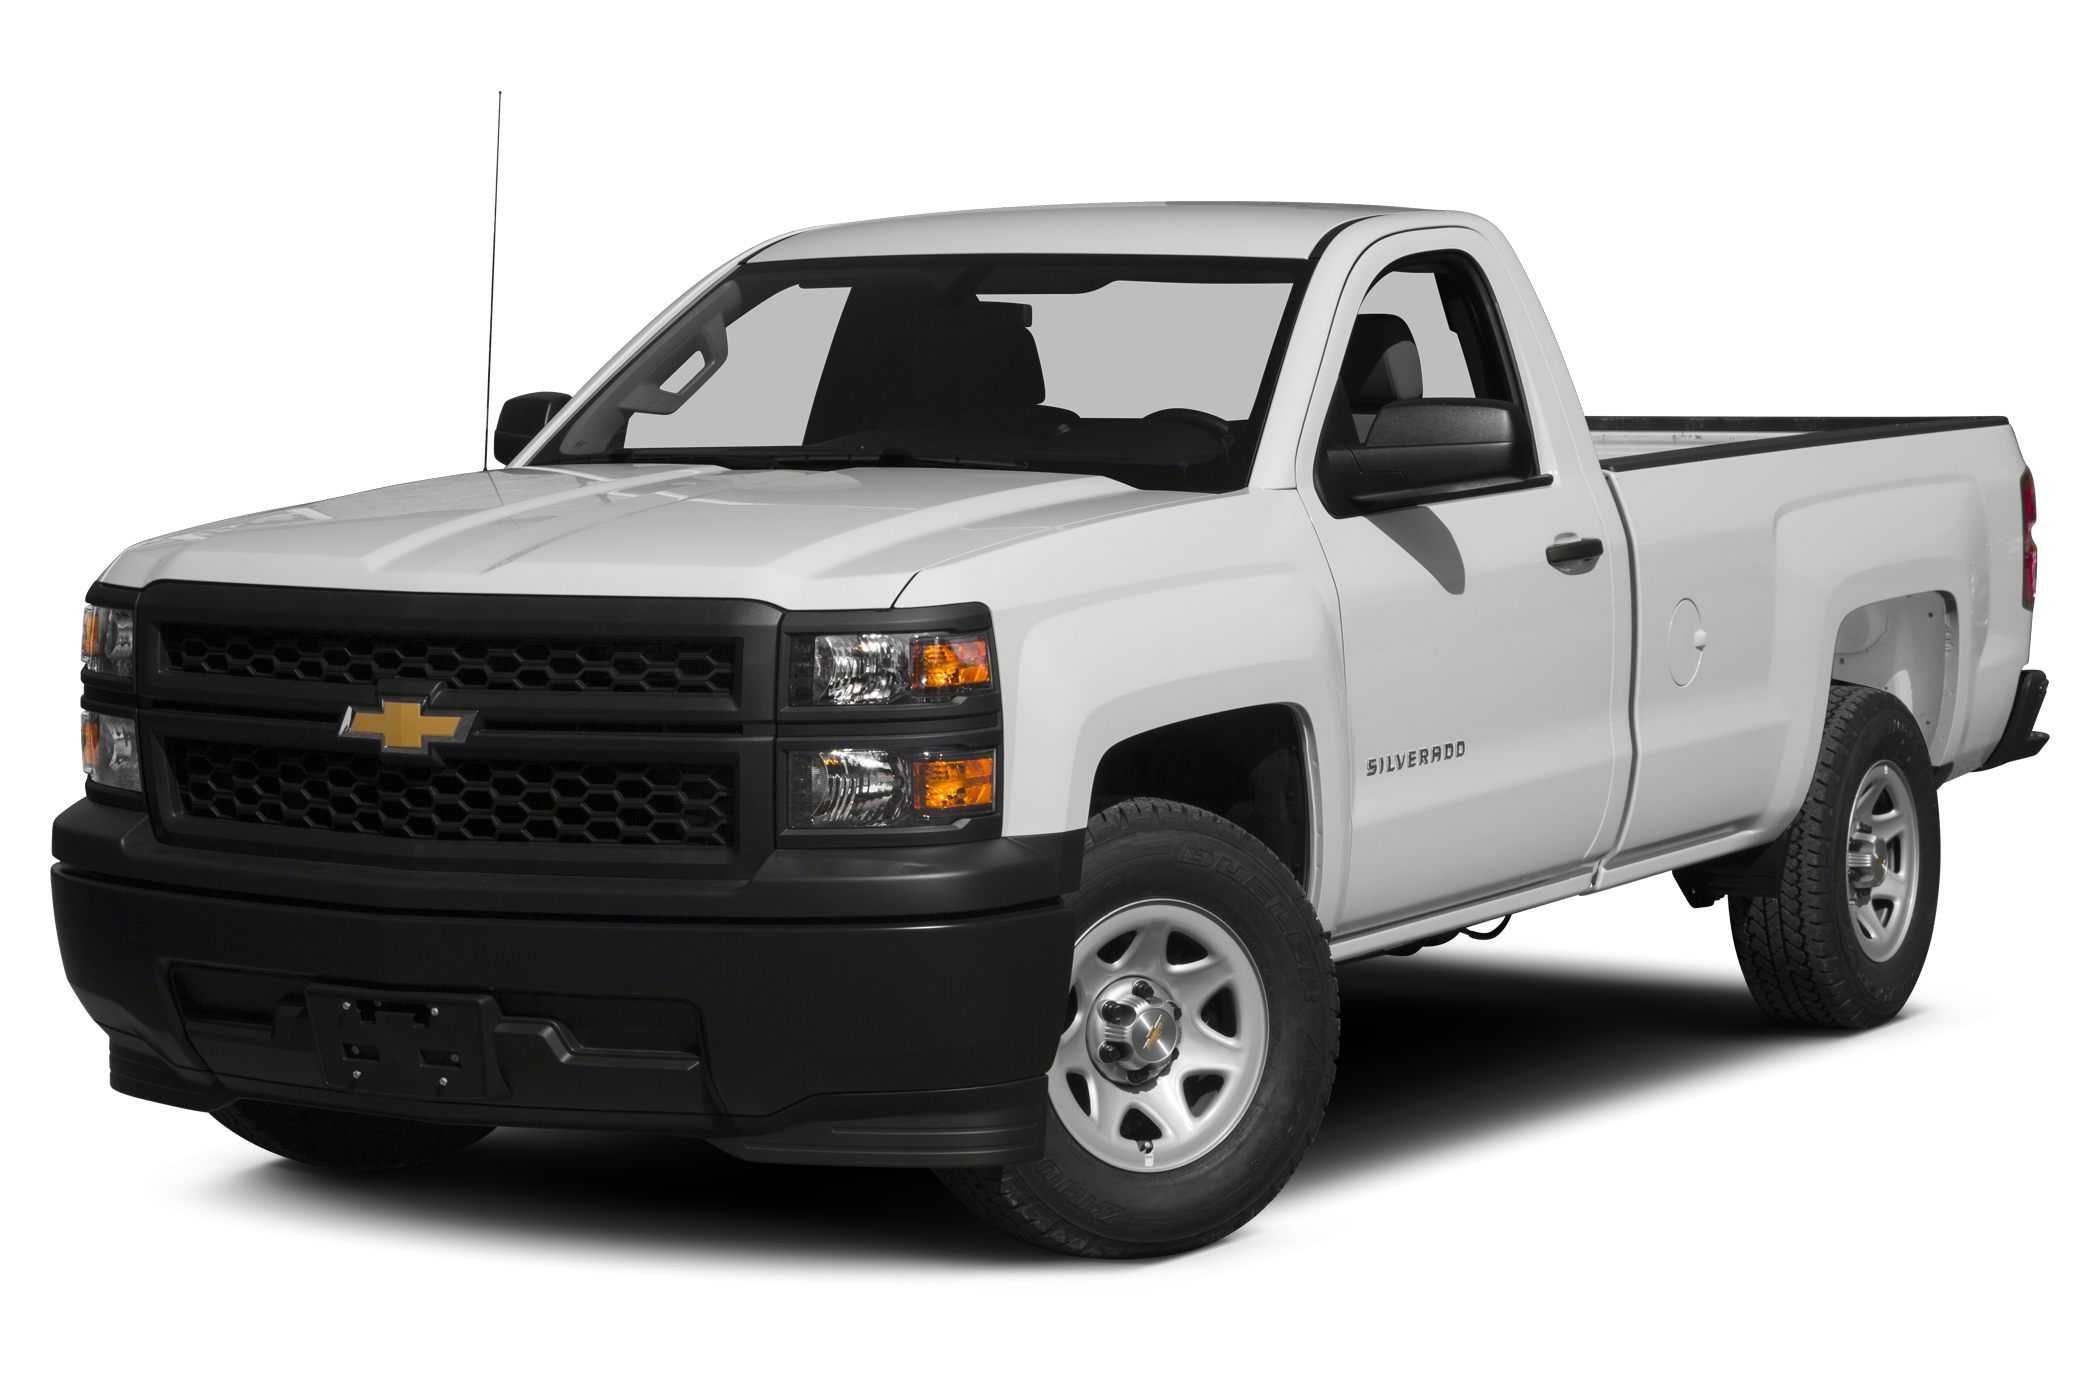 2015 Chevrolet Silverado 1500 1LT Crew Cab Pickup for sale in Winnsboro for $41,346 with 1 miles